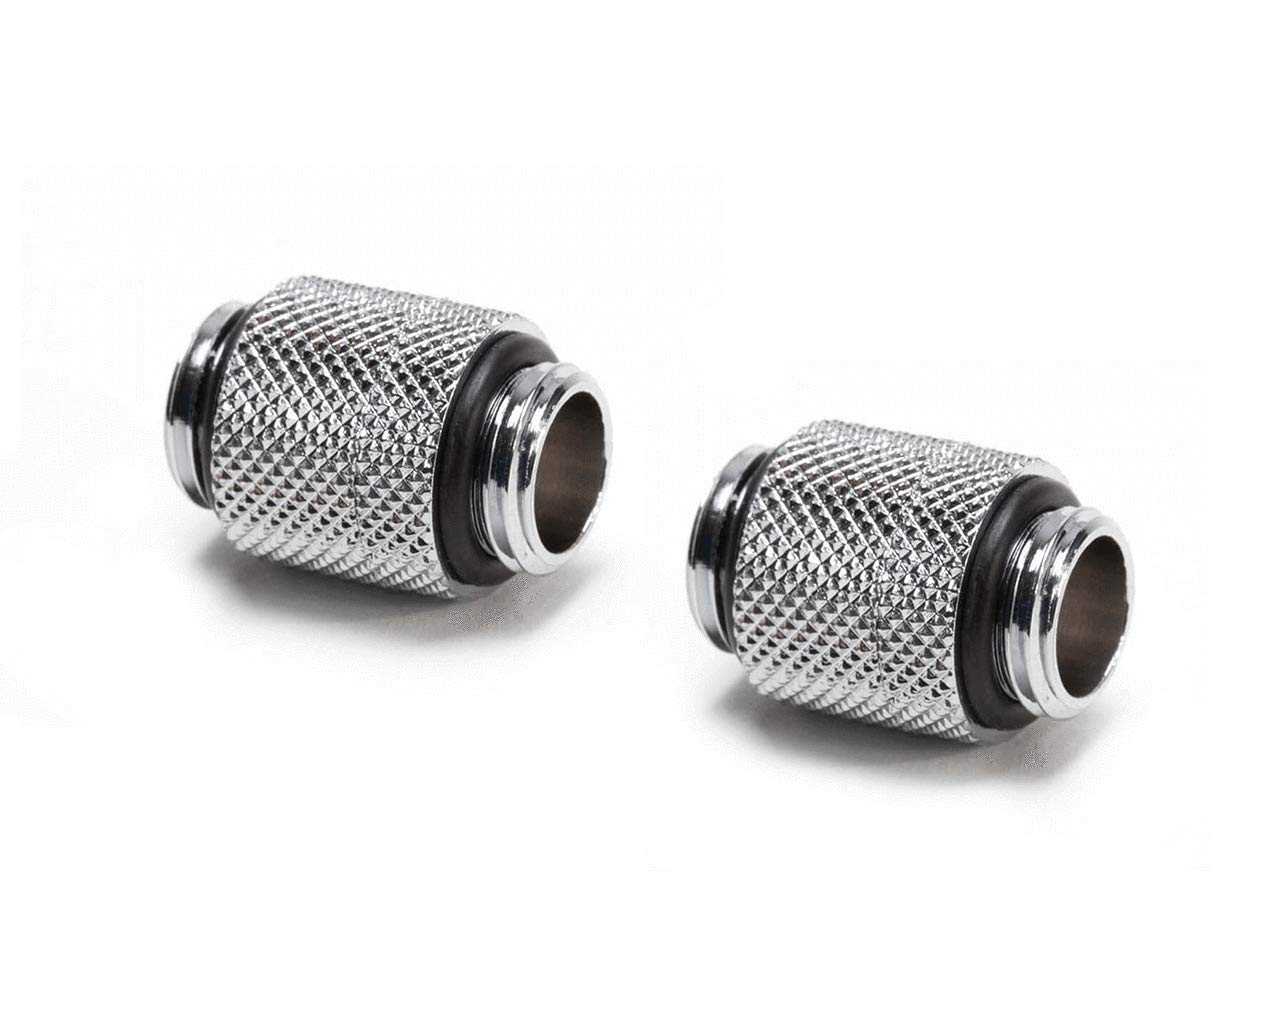 Nickel Silver 4 Pack PrimoChill Male to Female G1//4 90 Degree Rotary Elbow Fitting